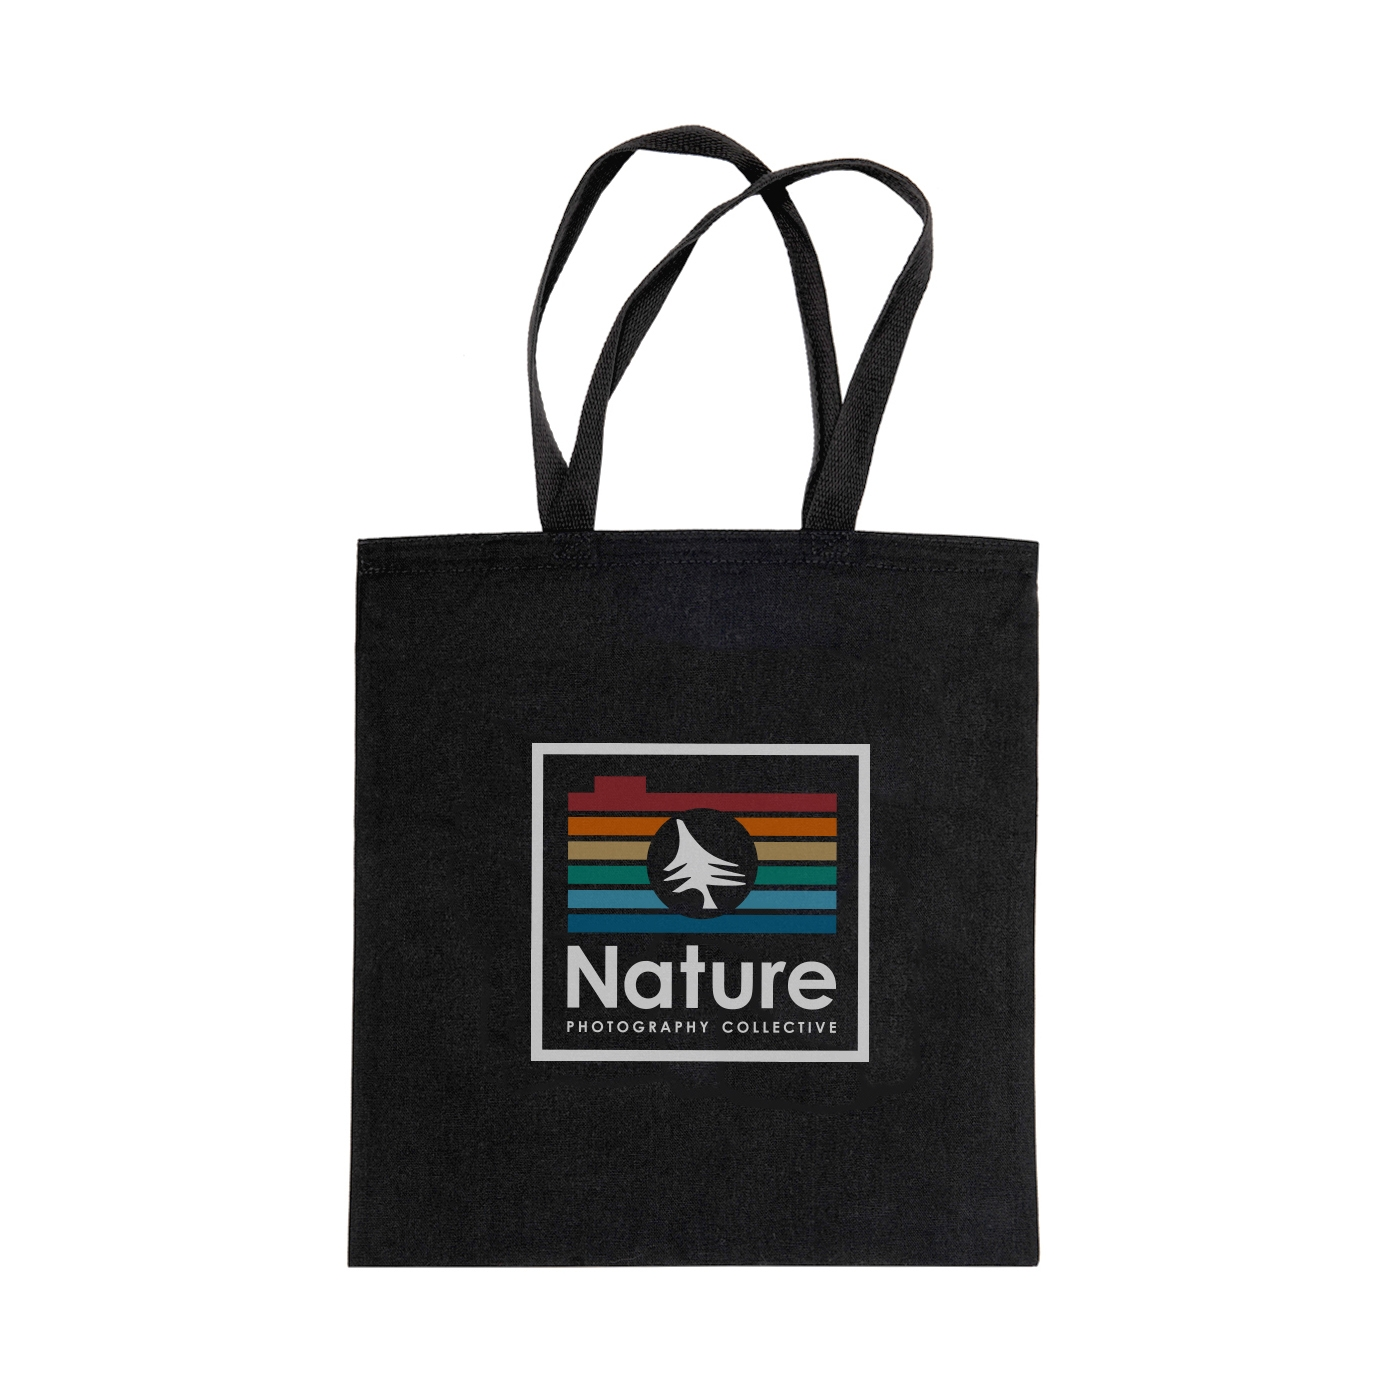 #52Weeksofnature Week 11 Tote